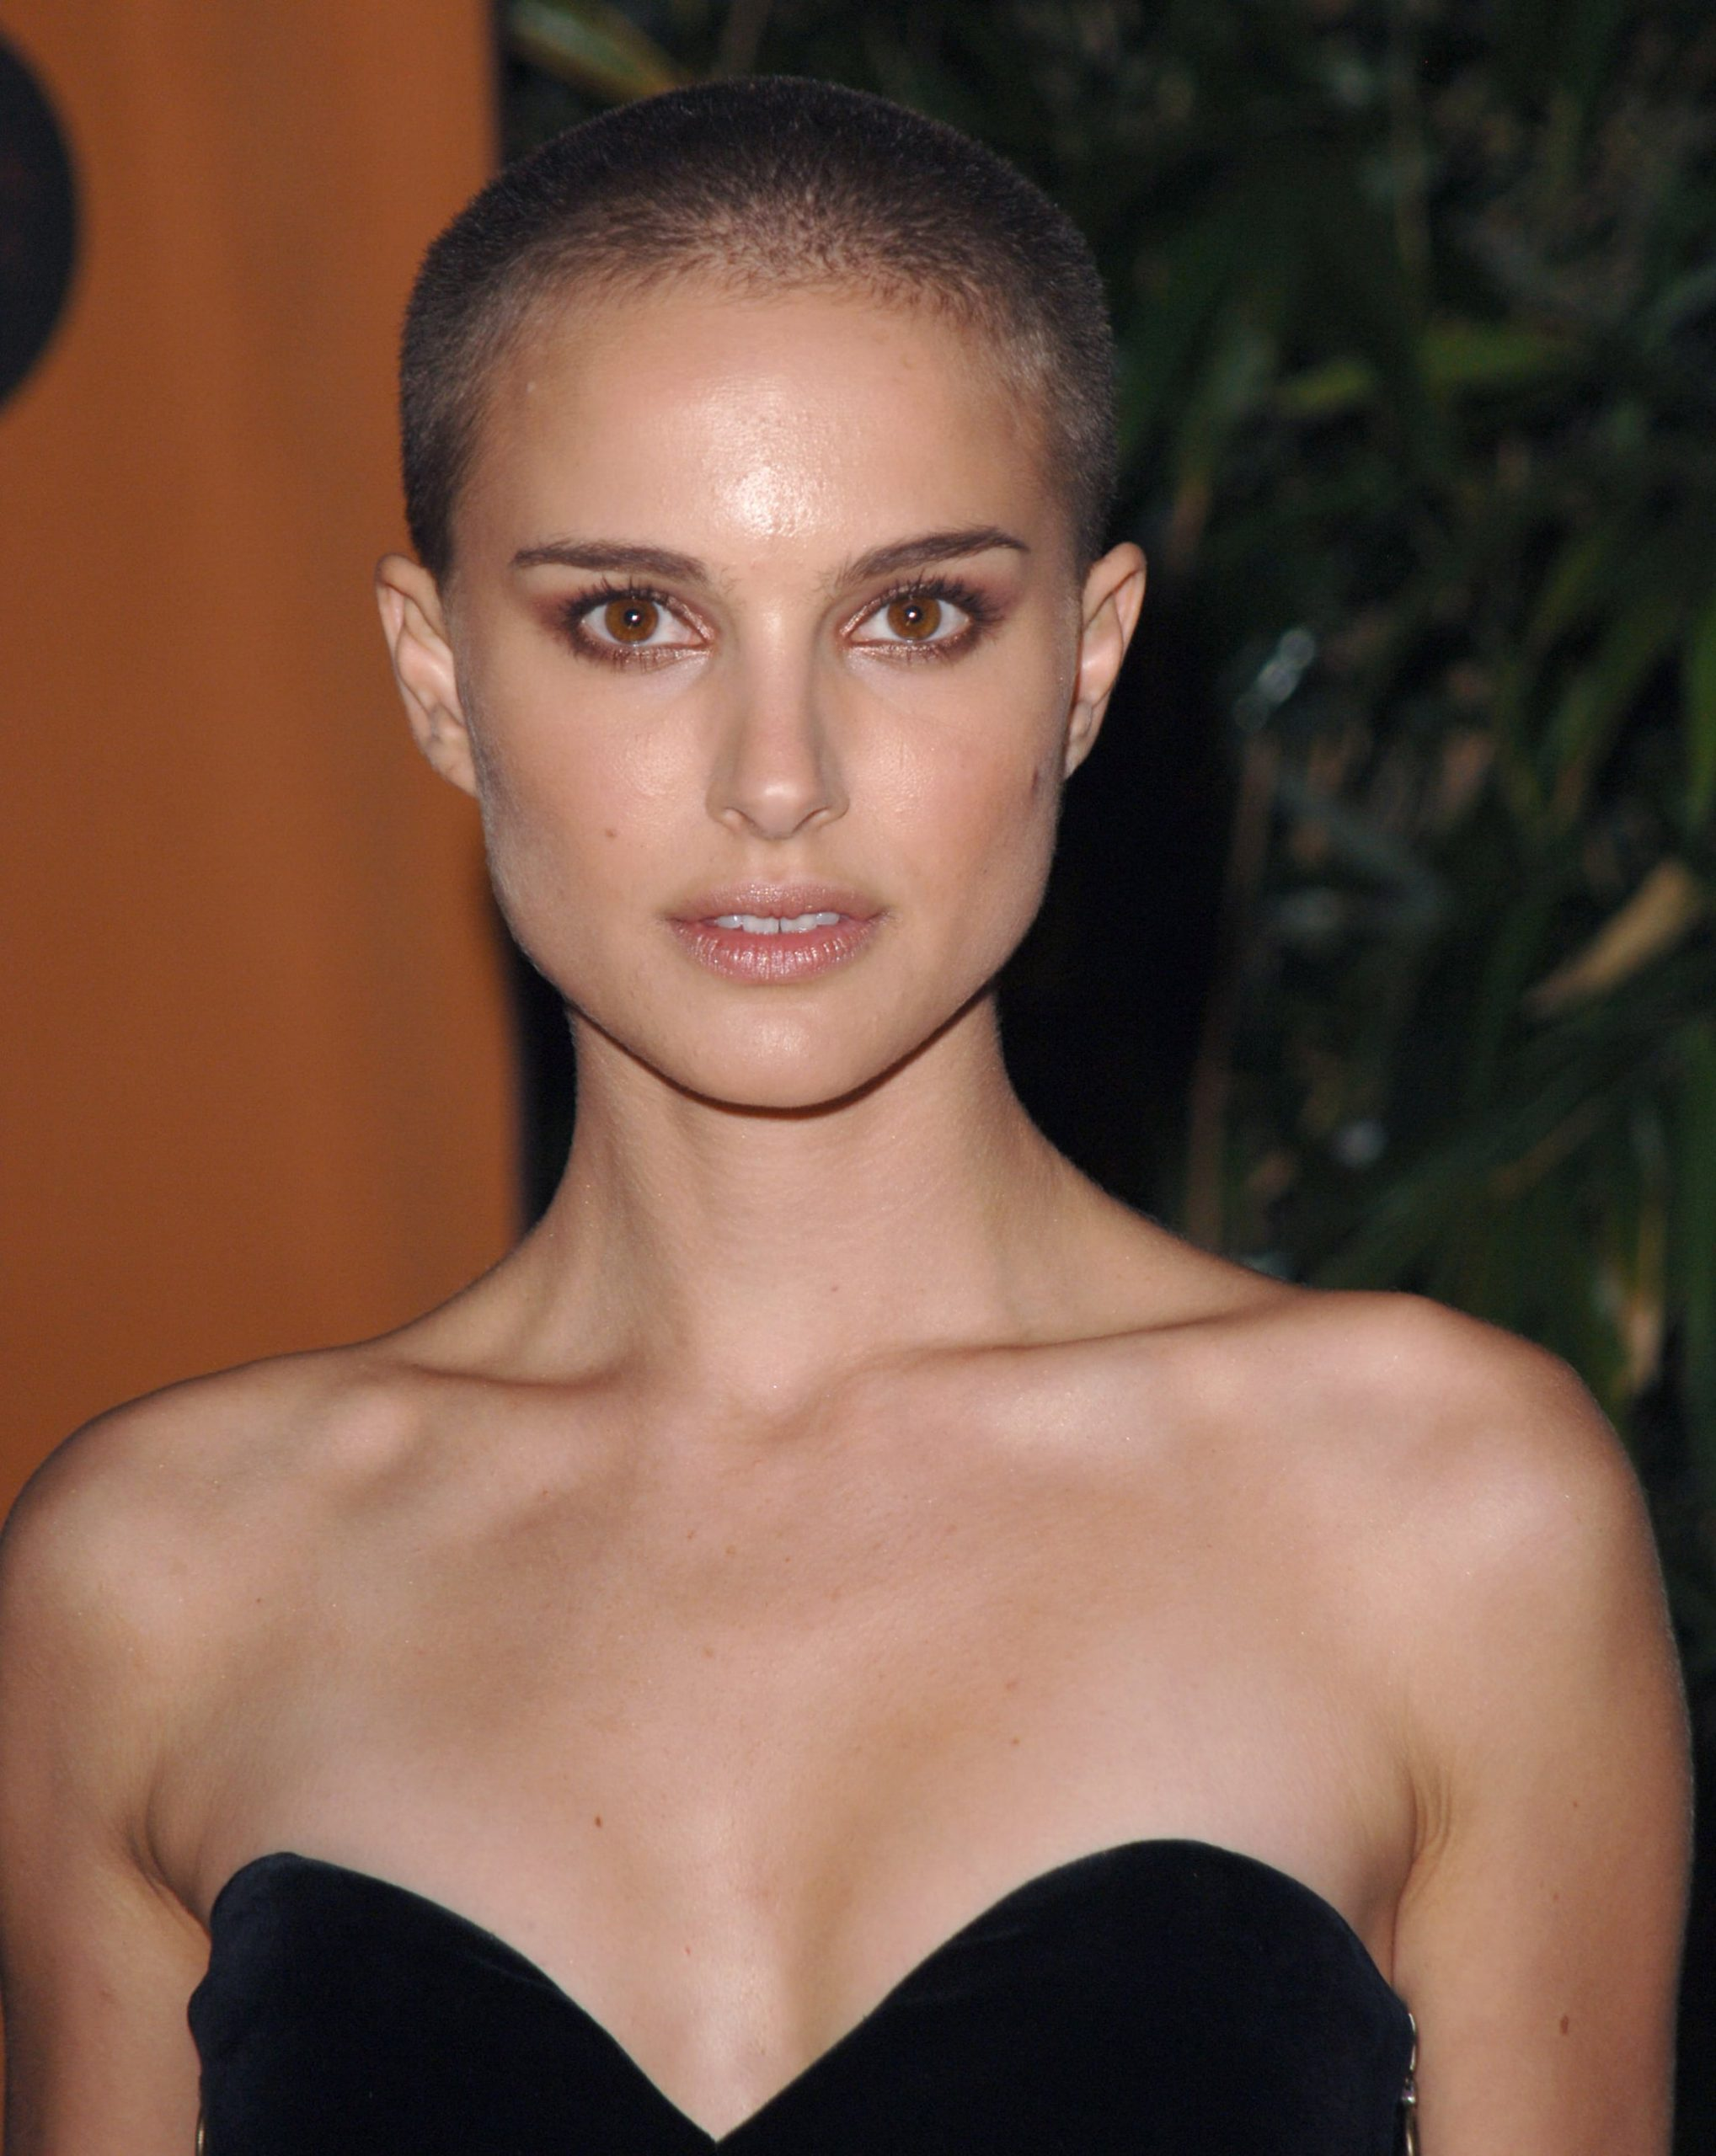 Natalie Portman Buzz Cut - Celebrity Buzz Cuts